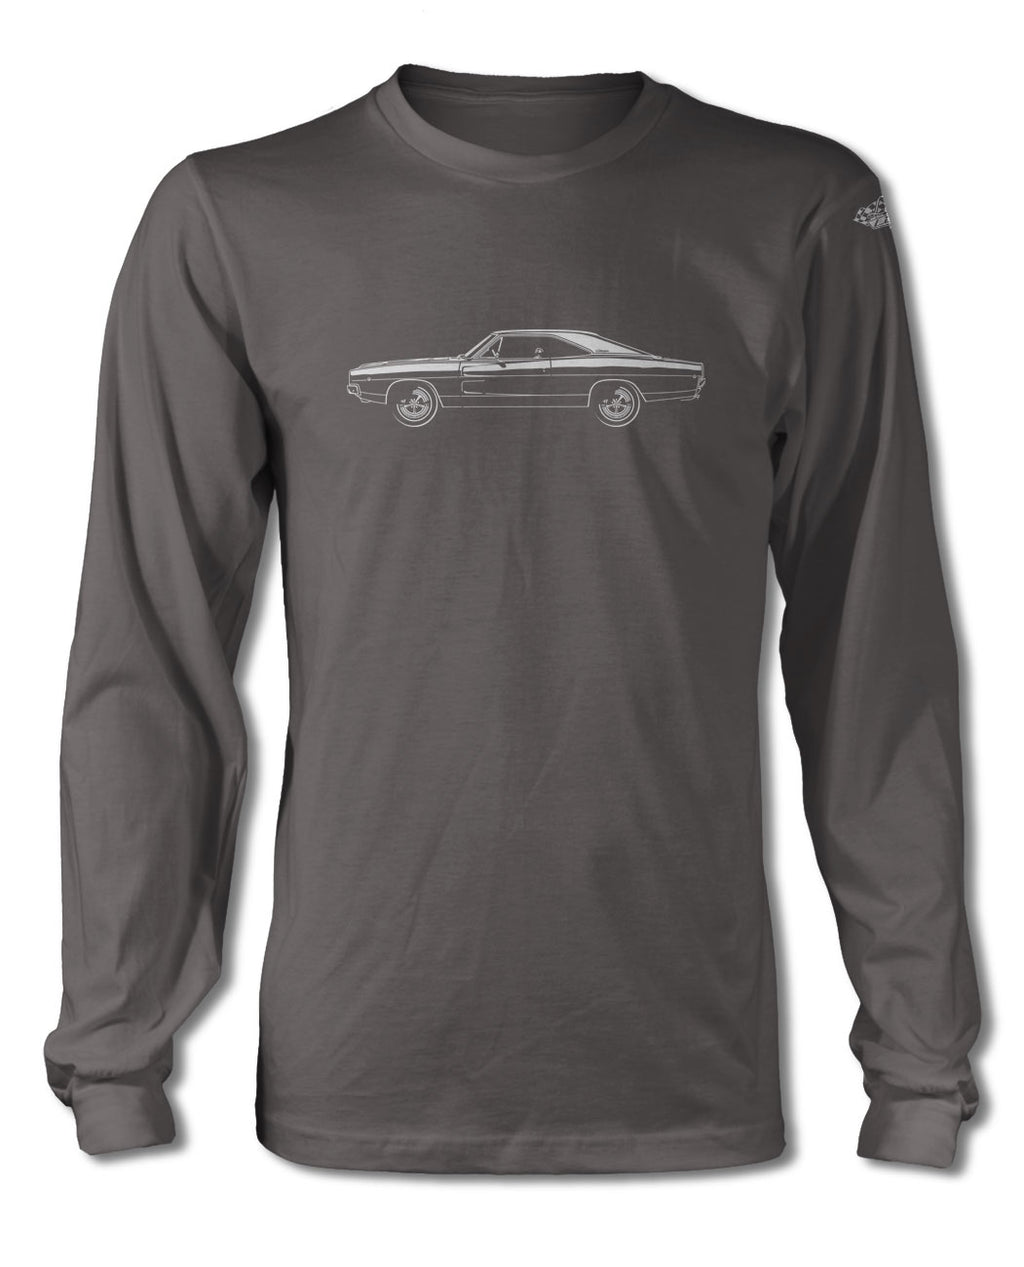 1968 Dodge Charger Base Hardtop T-Shirt - Long Sleeves - Side View